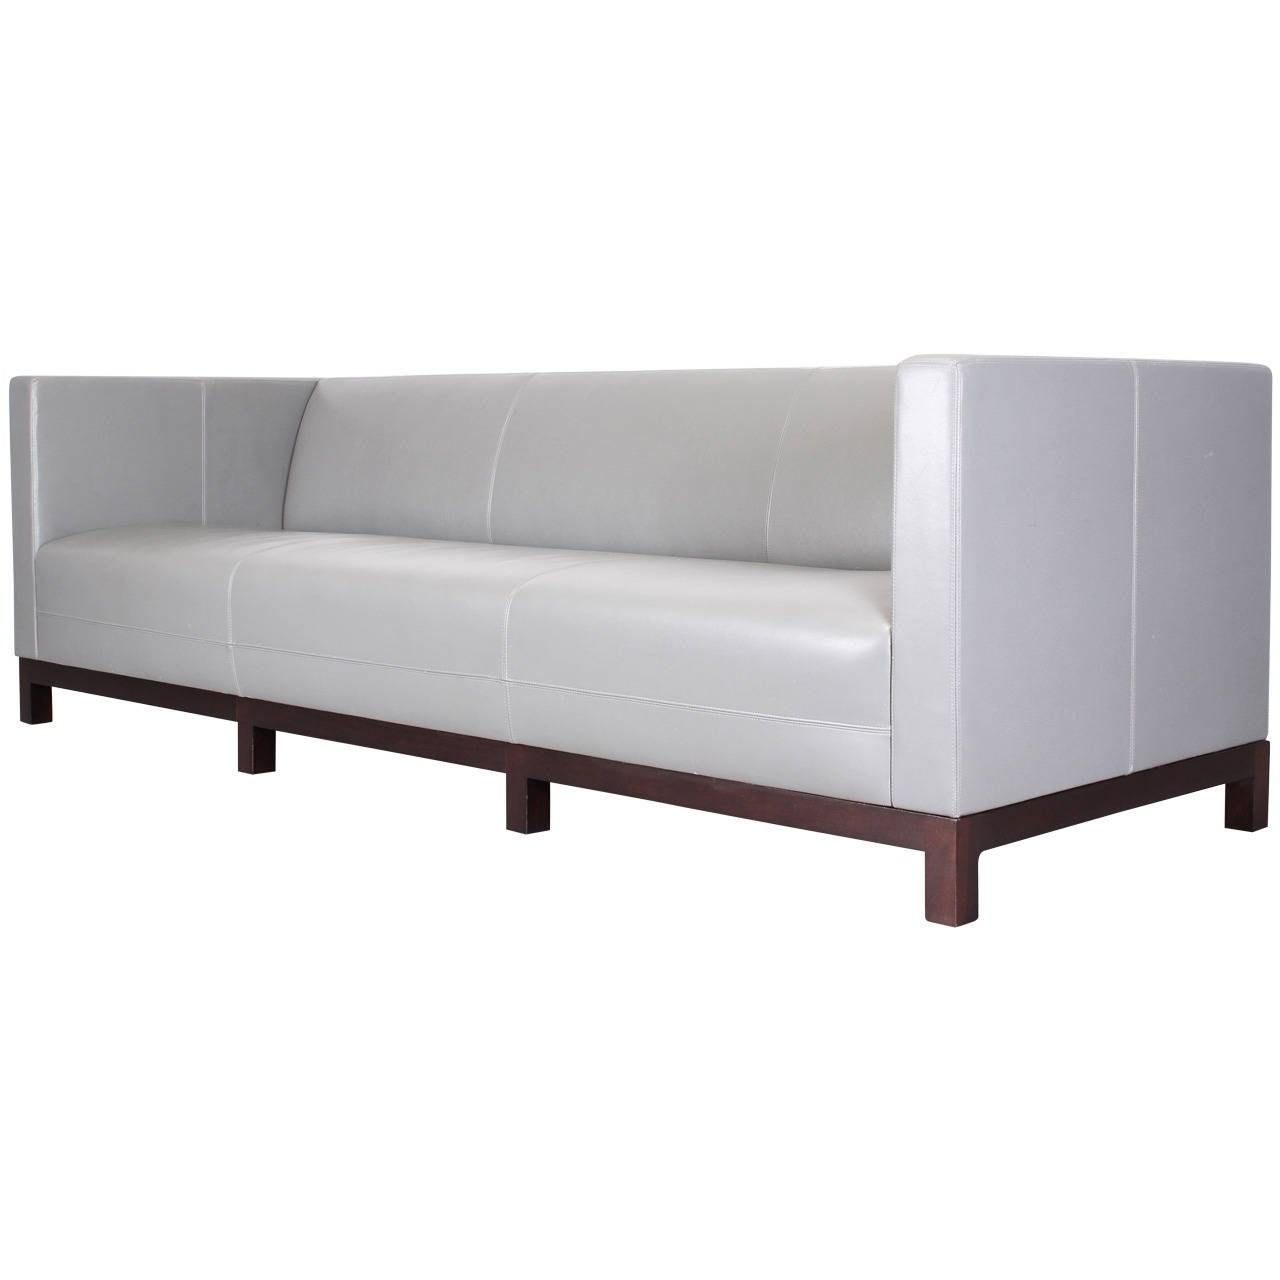 Christian liaigre sofa at 1stdibs for Sofa 75 cm tief